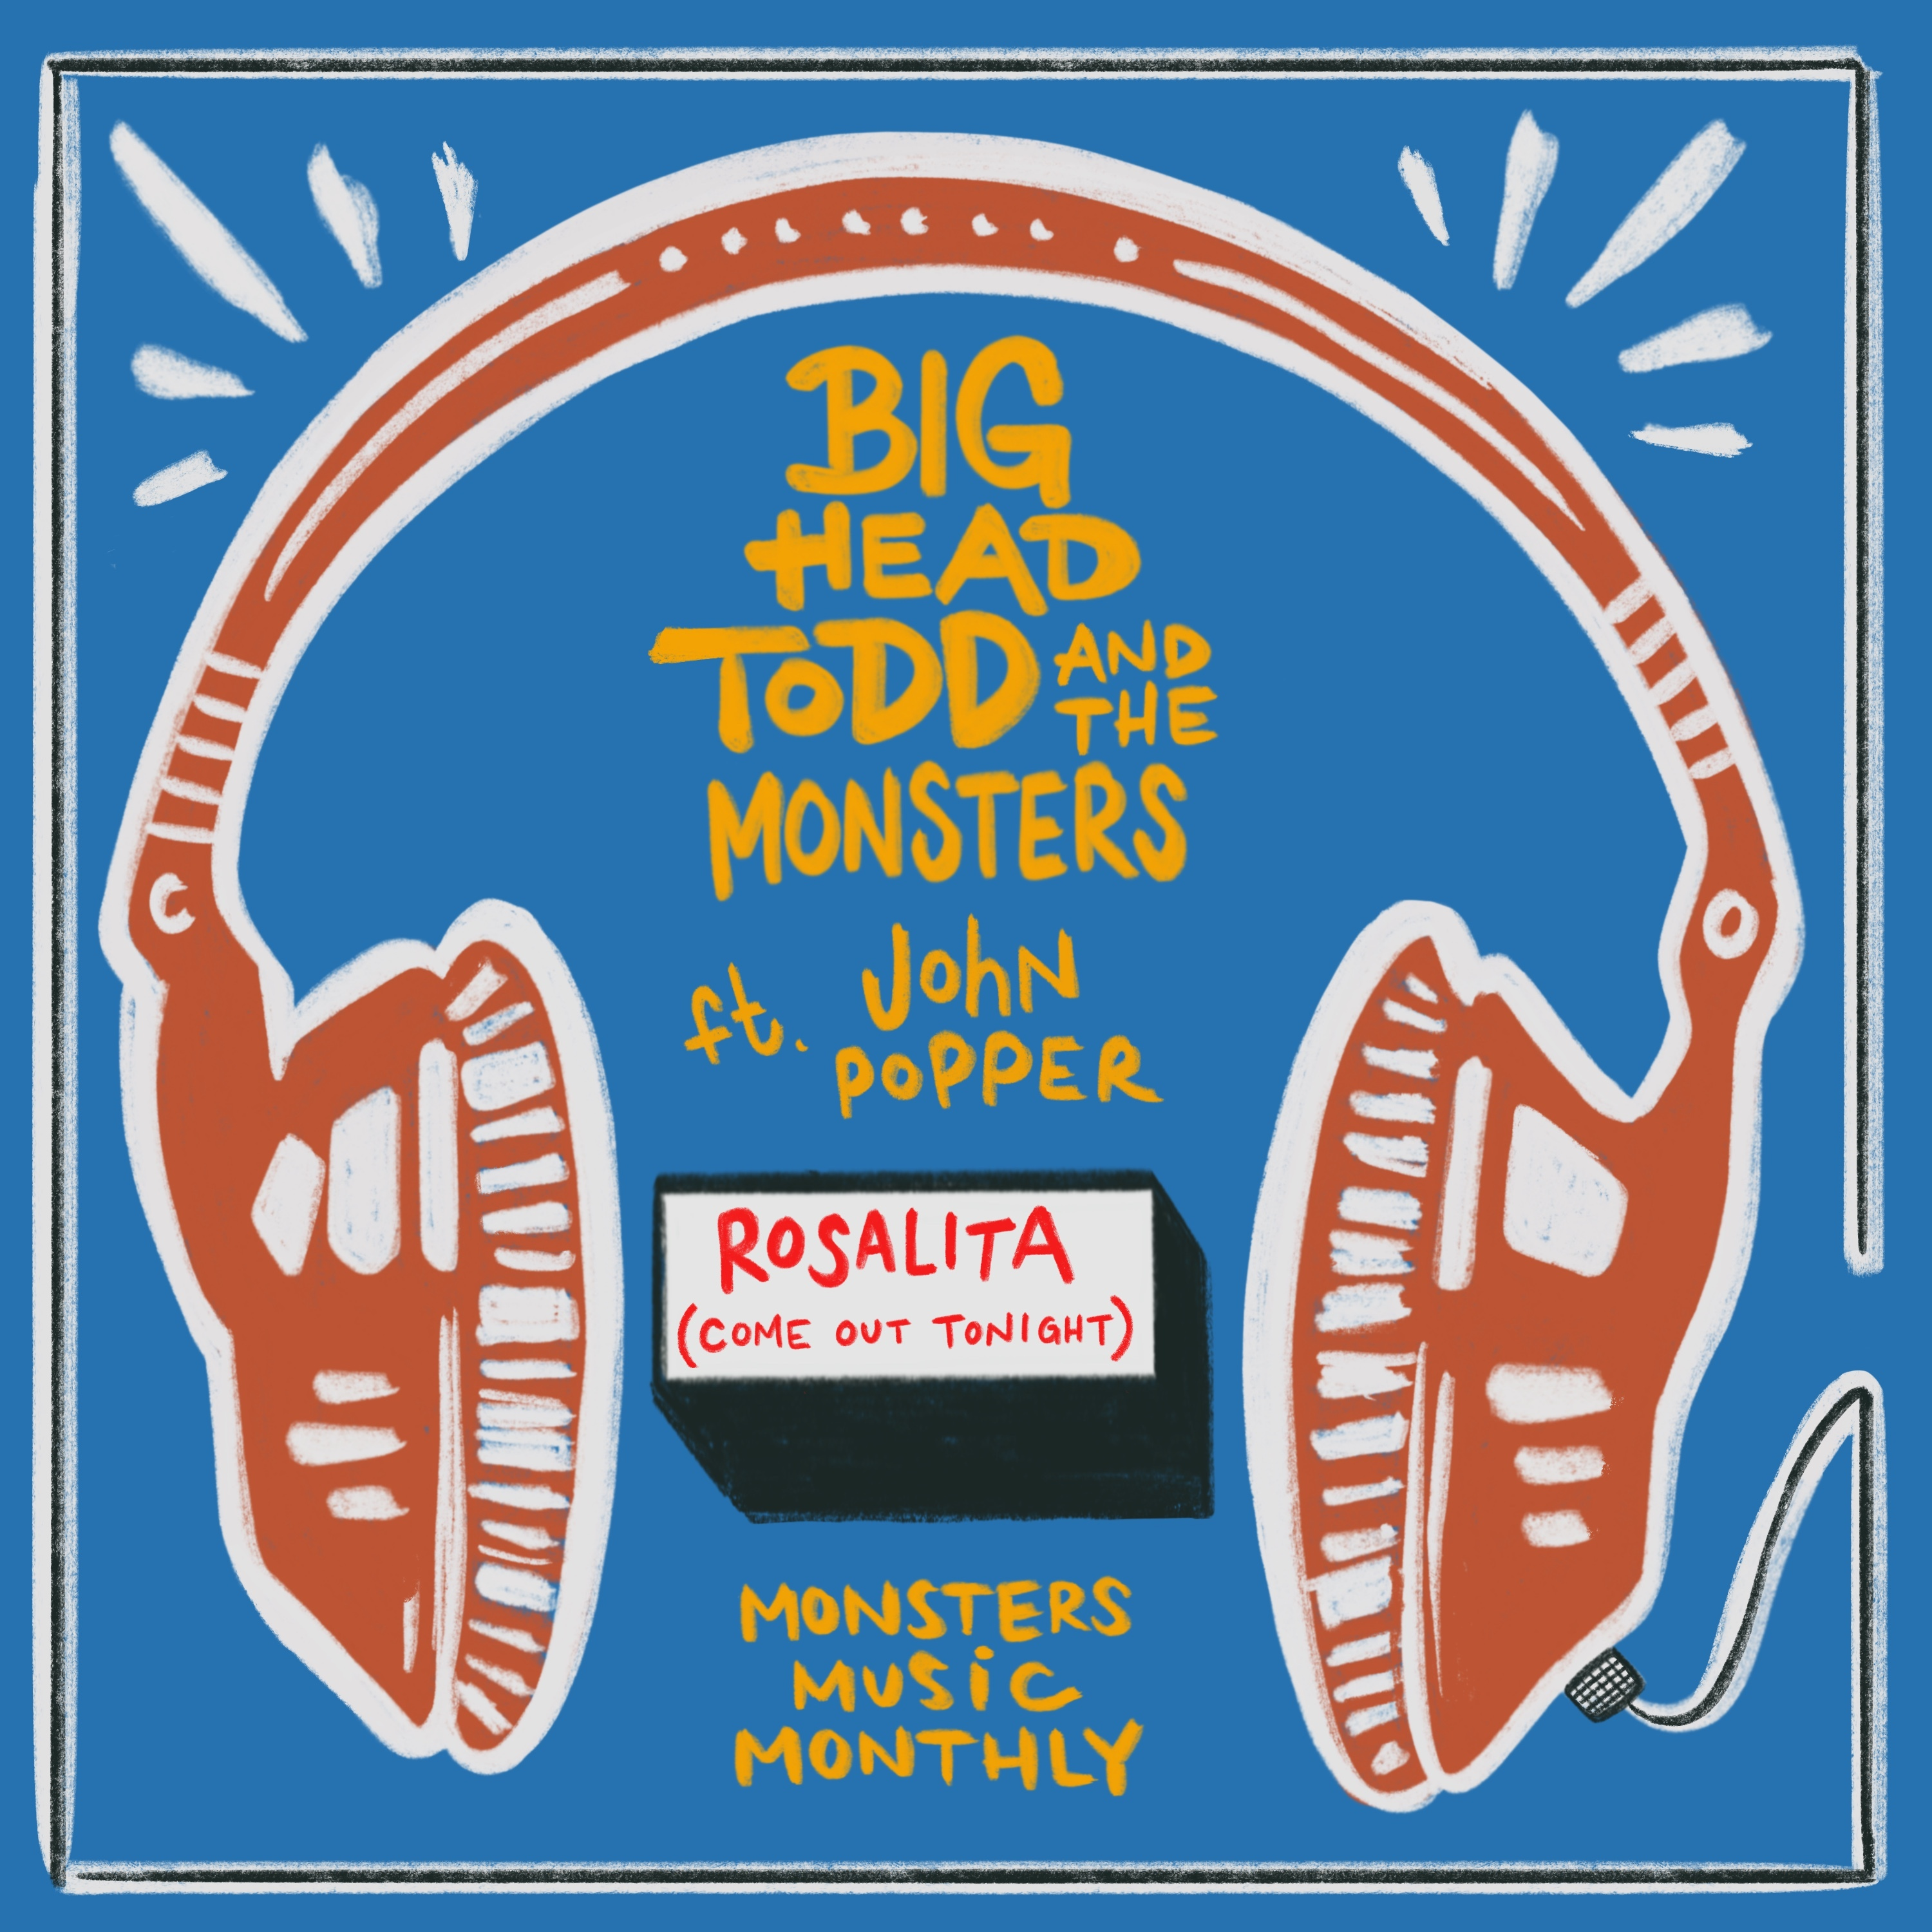 Fresh BHTM Release: Rosalita (Come Out Tonight) feat. John Popper!